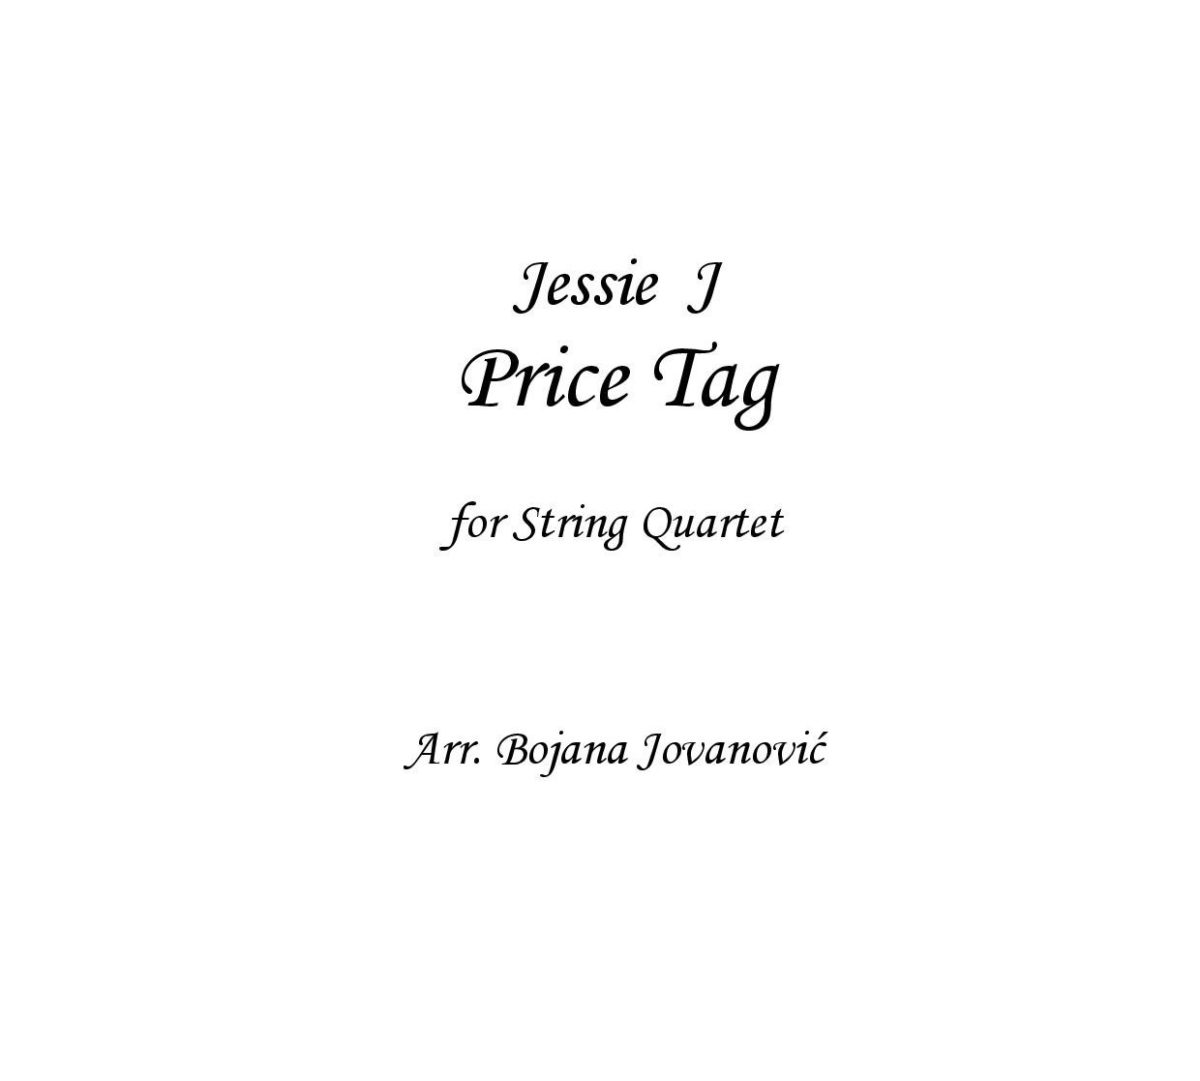 Price Tag (Jessie J) - Sheet Music